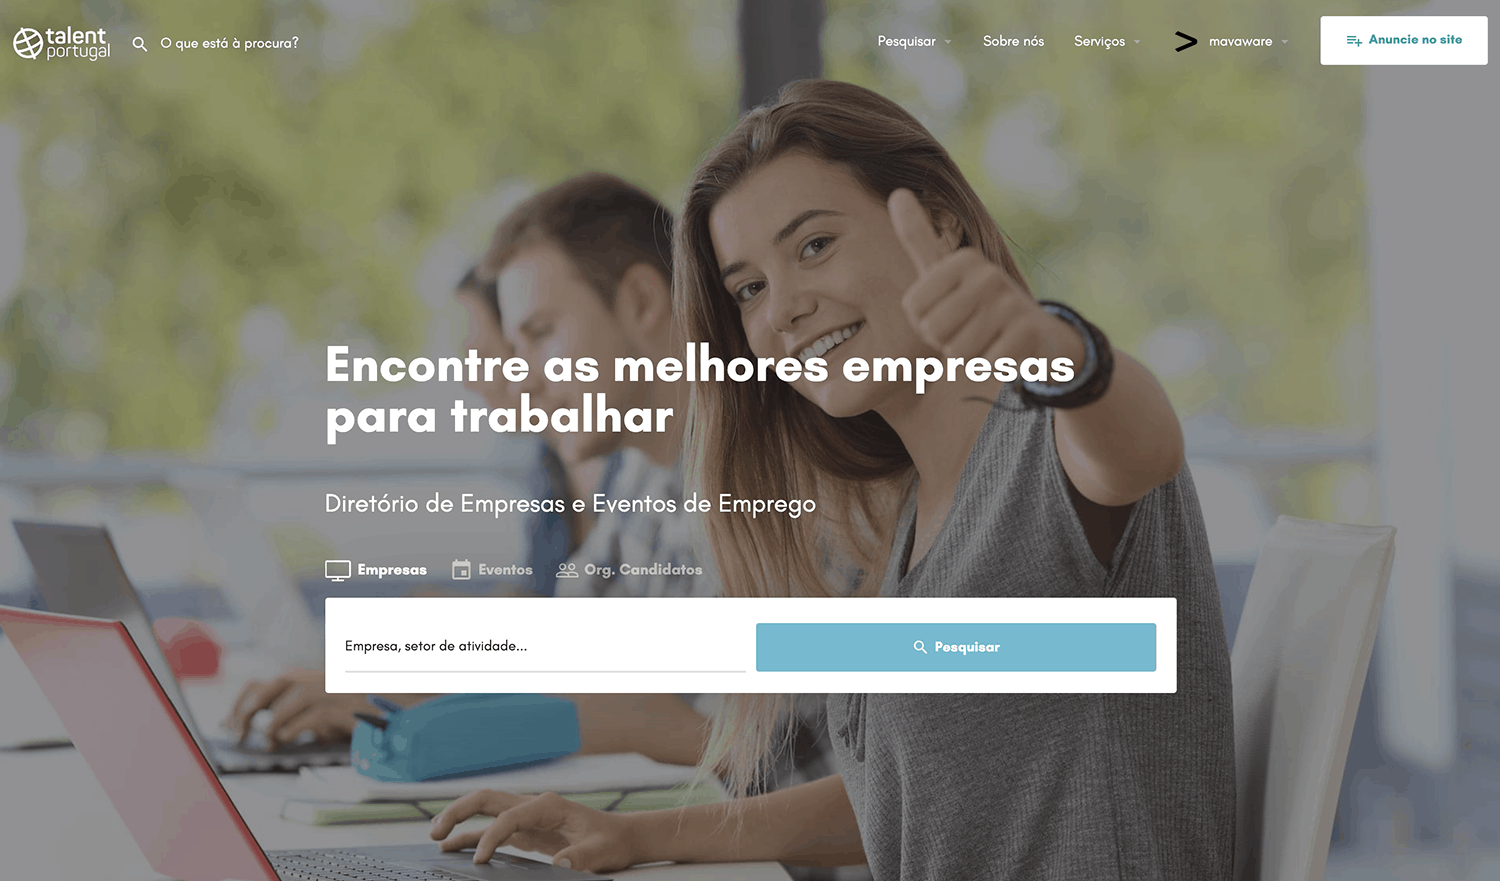 Talent Portugal - Homepage